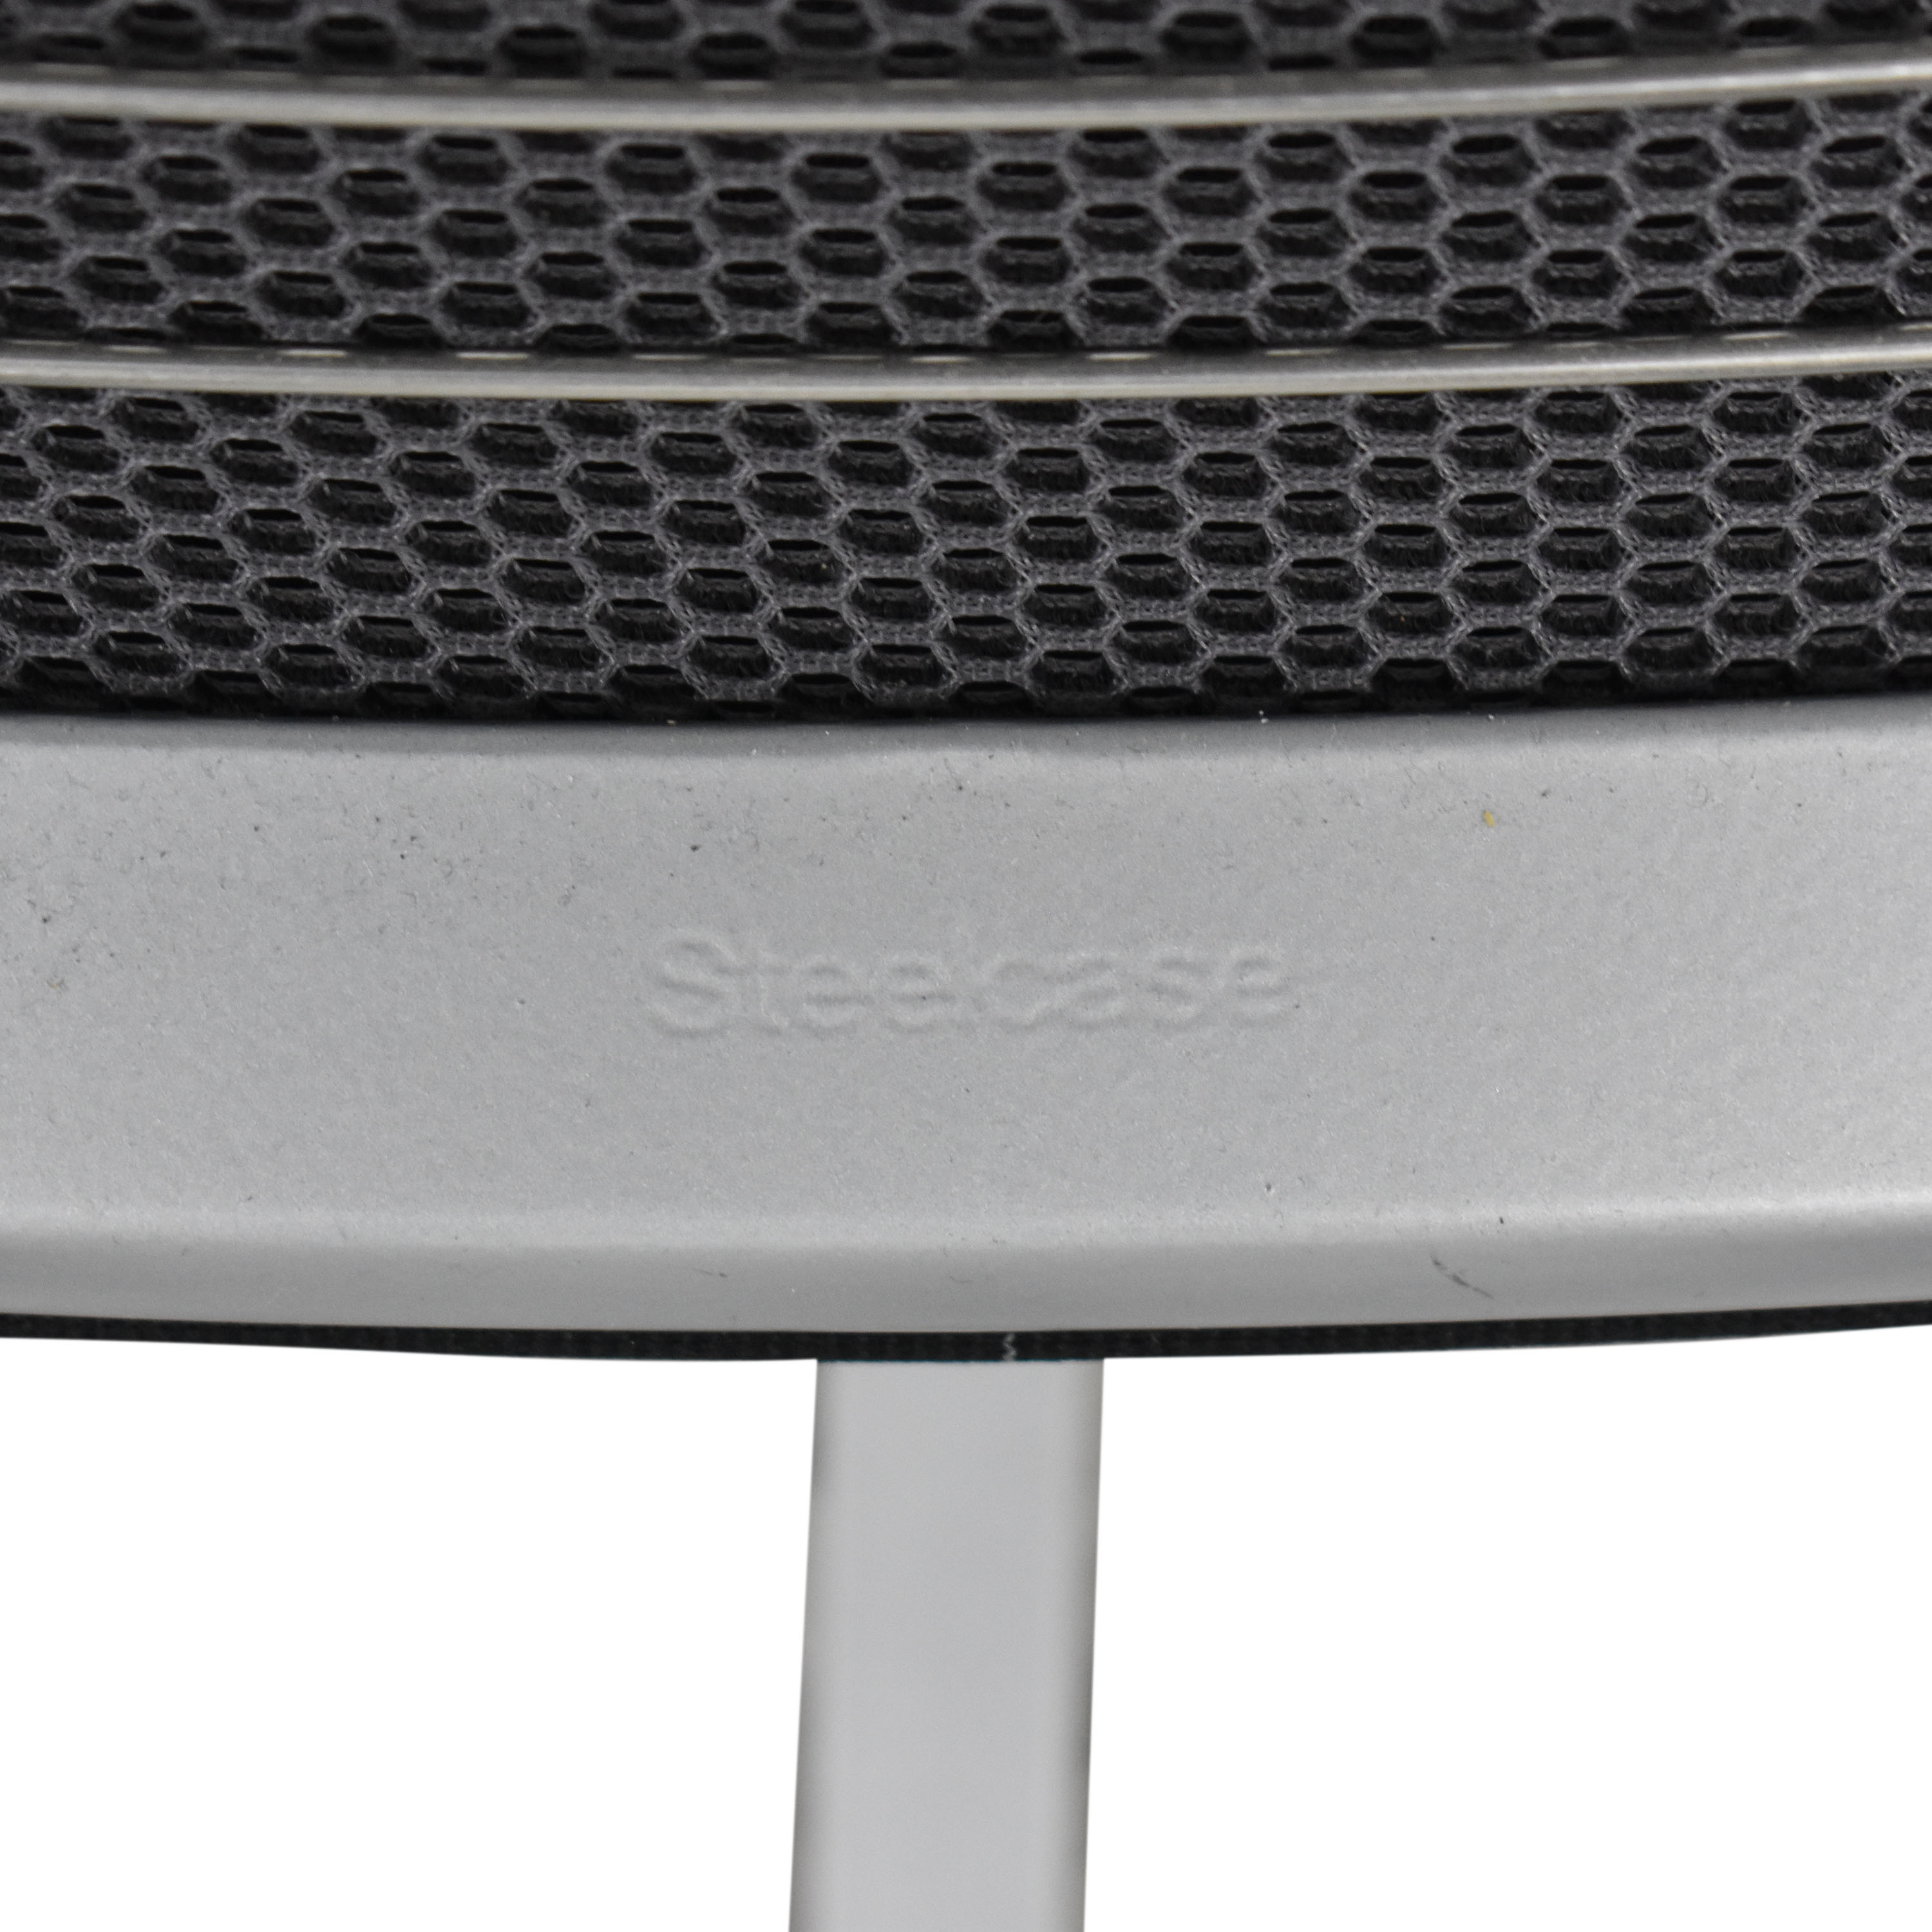 Steelcase Steelcase Cobi Swivel Chair Black and silver